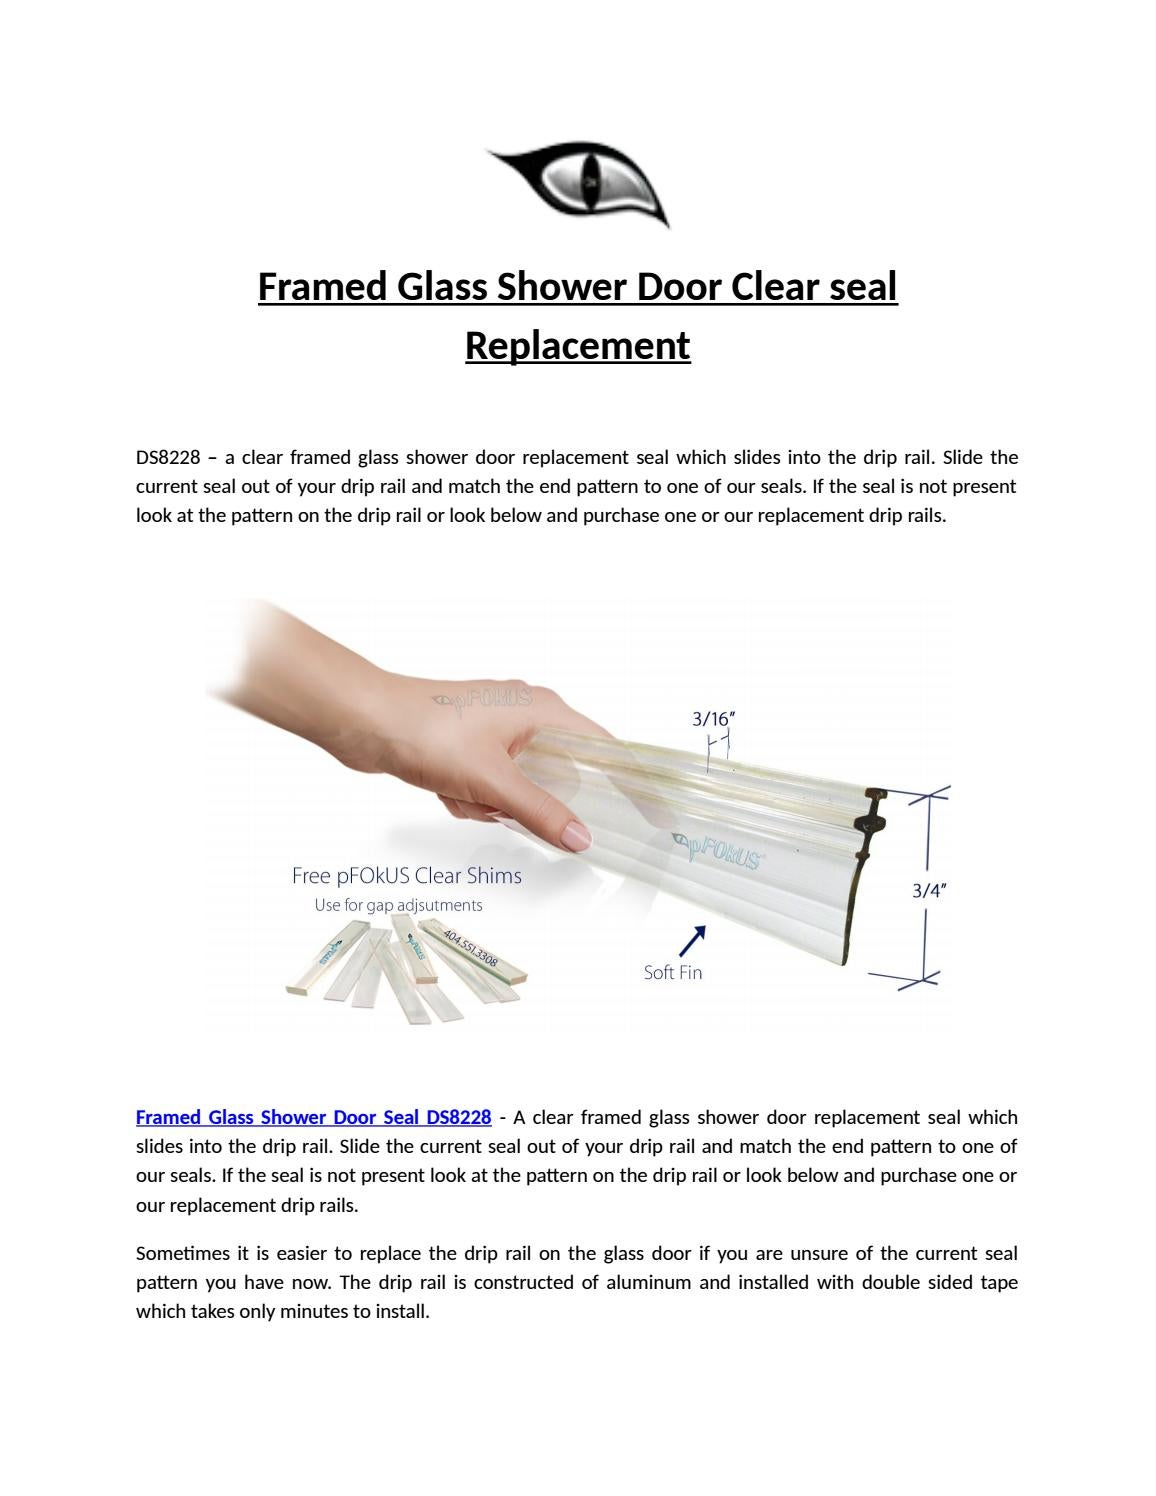 Framed glass shower door clear seal replacement by Seopfocus - issuu